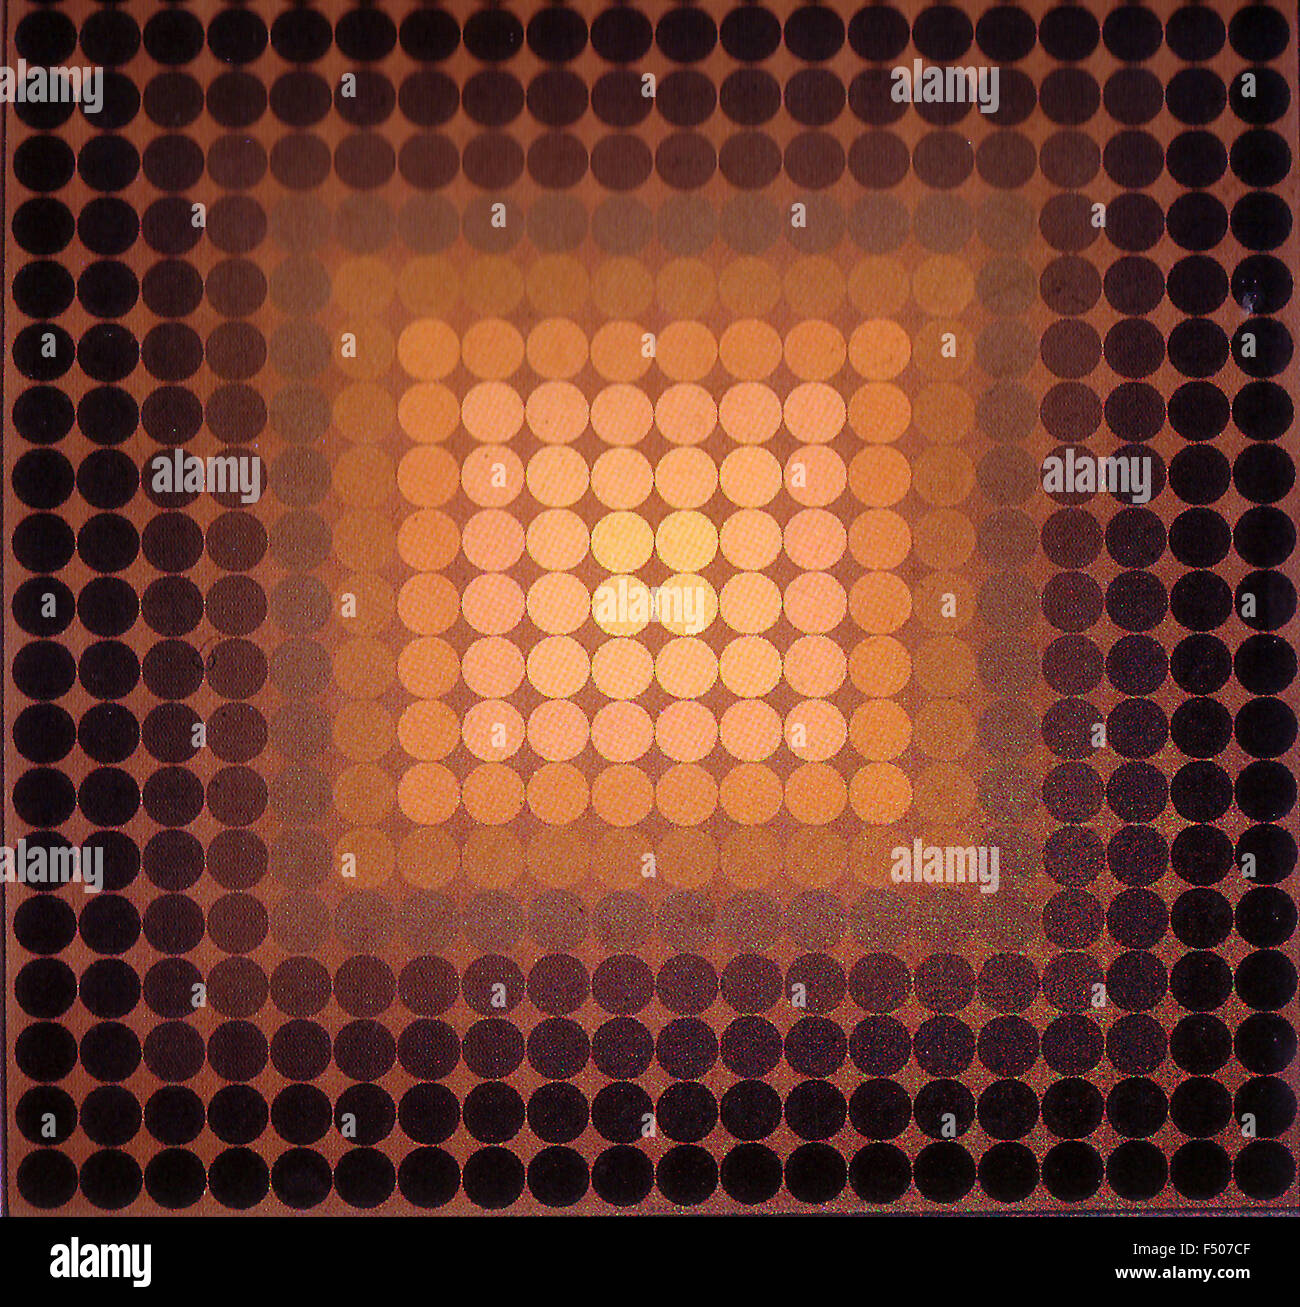 Victor Vasarely - CTA Phil - Stock Image